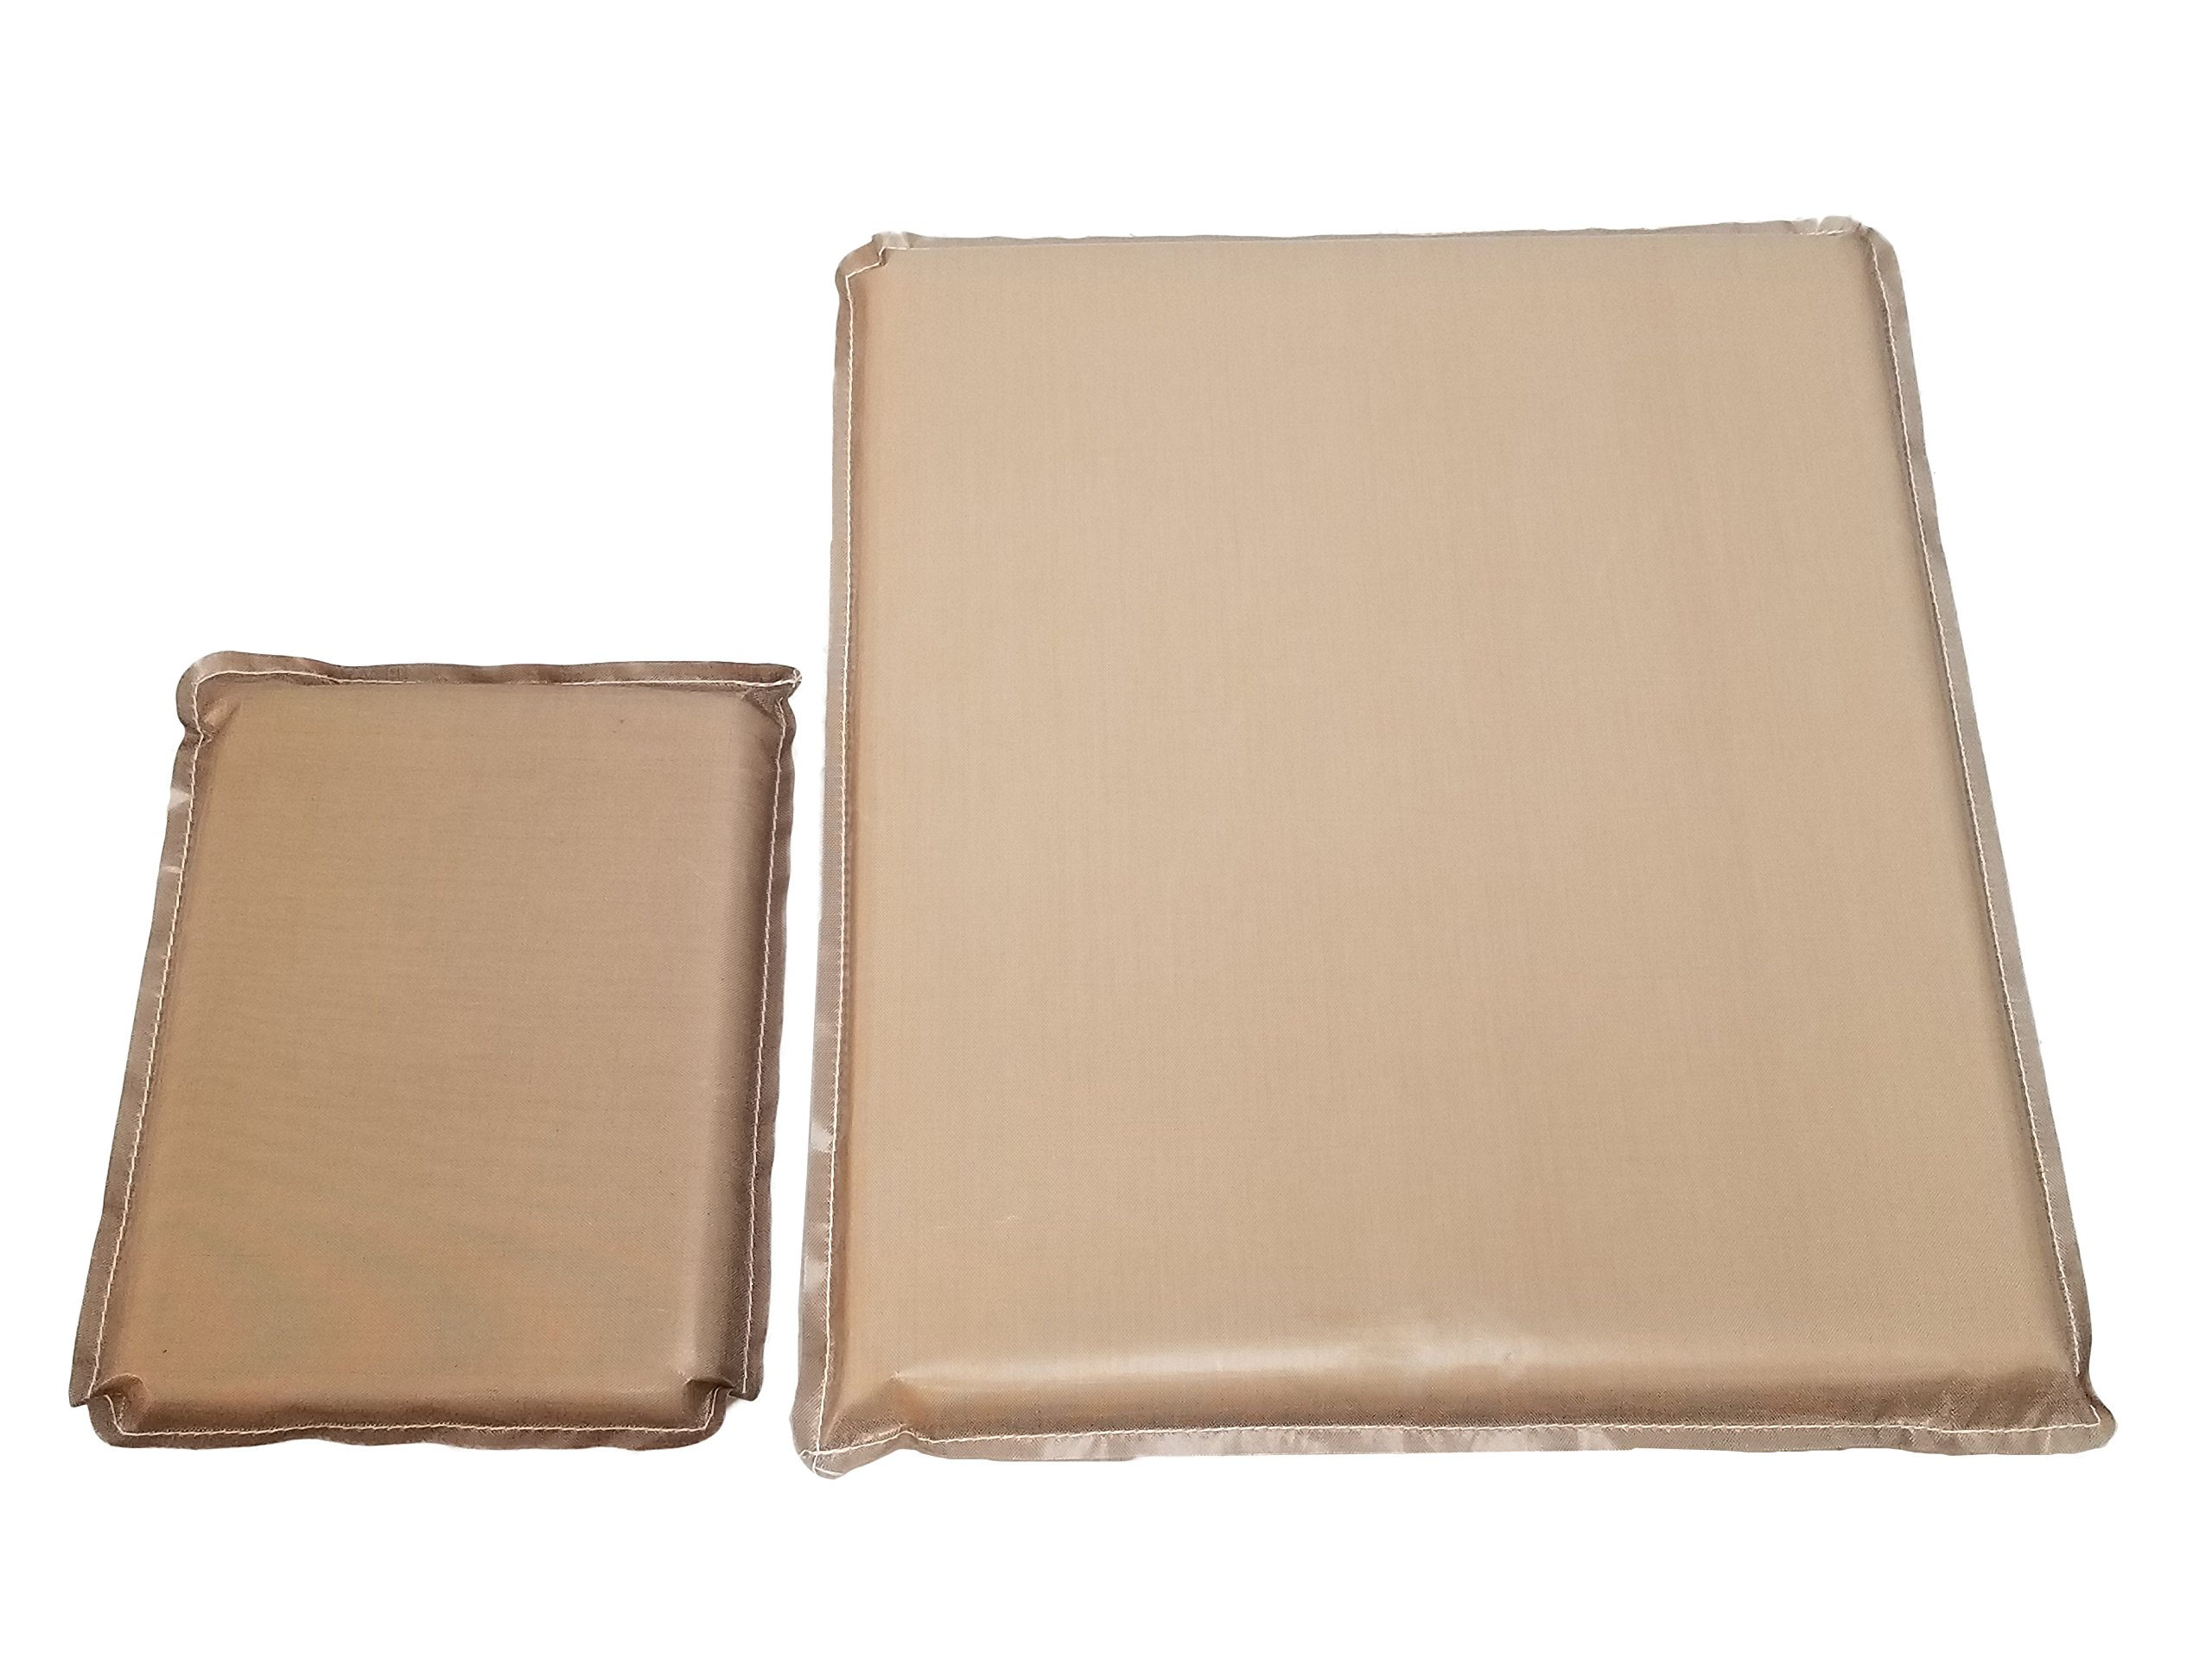 Heat Press Pillow bundle (2 Pack) 6 x 8'', 12 x 14'' by Essentialware with 3/4'' Thick Memory Foam by Essentialware